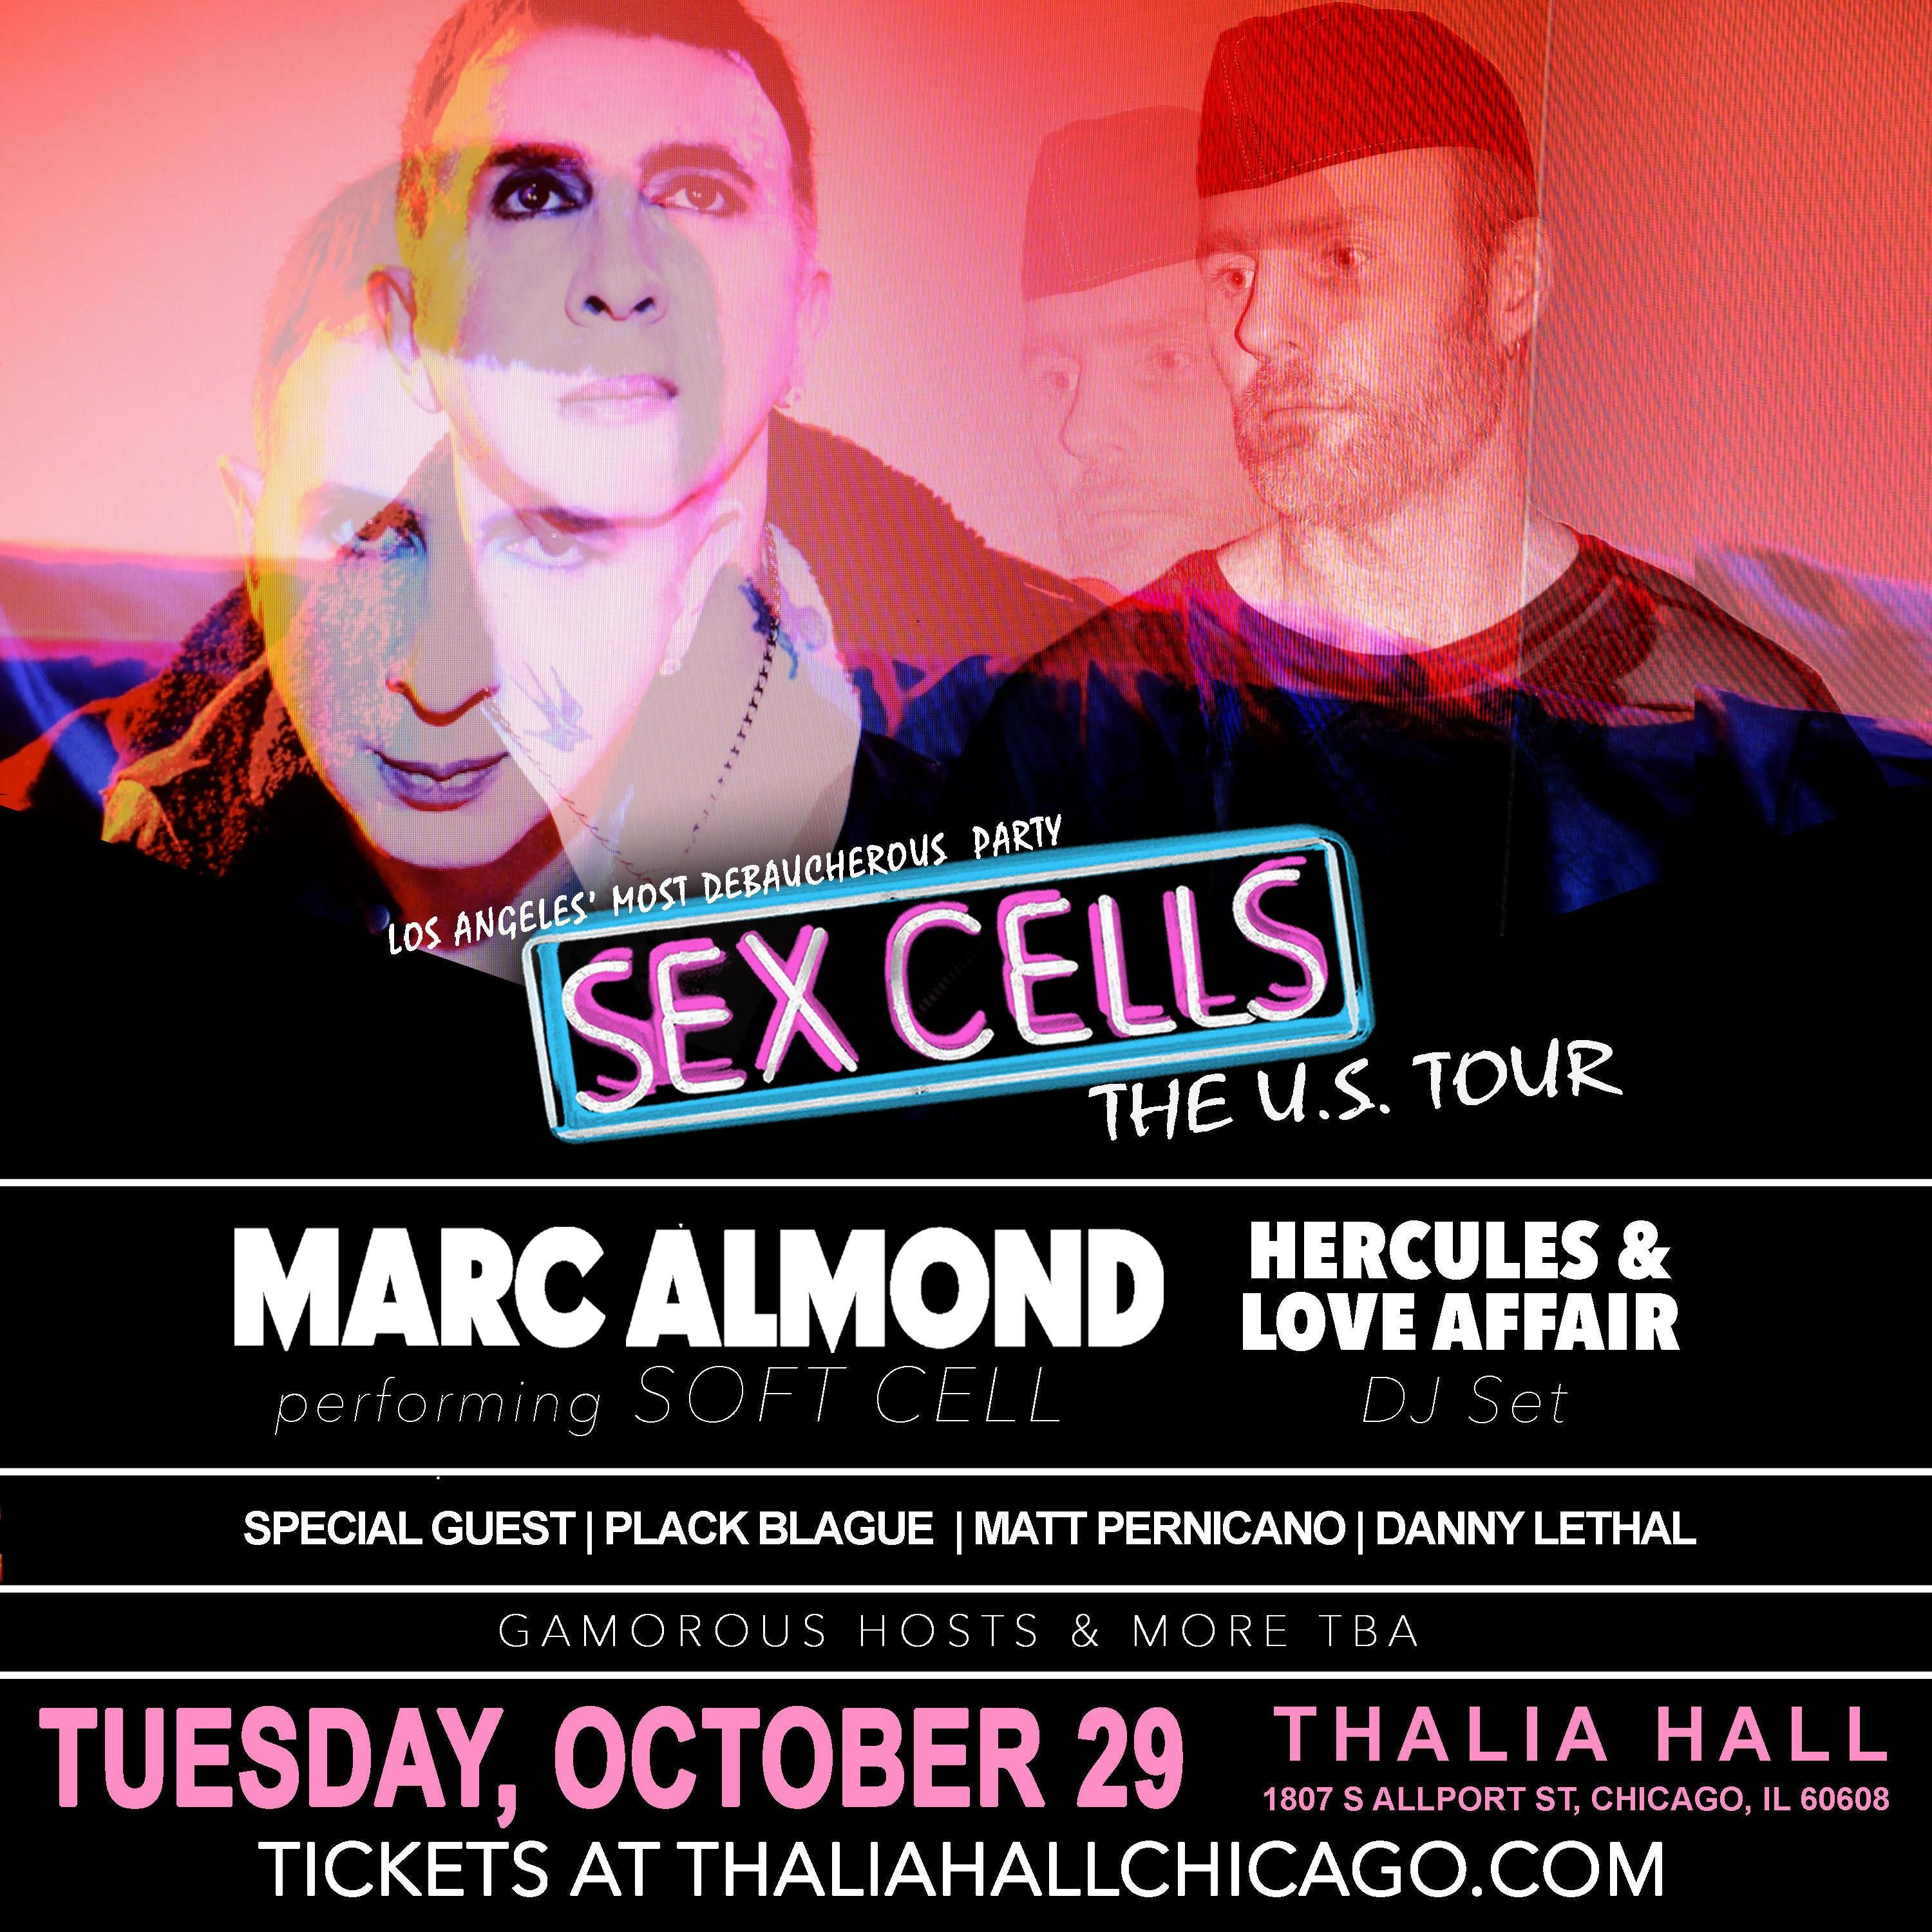 Marc Almond (Soft Cell) with Hercules & Love Affair, Plack Blague, Matt Pernicano, and Danny Lethal